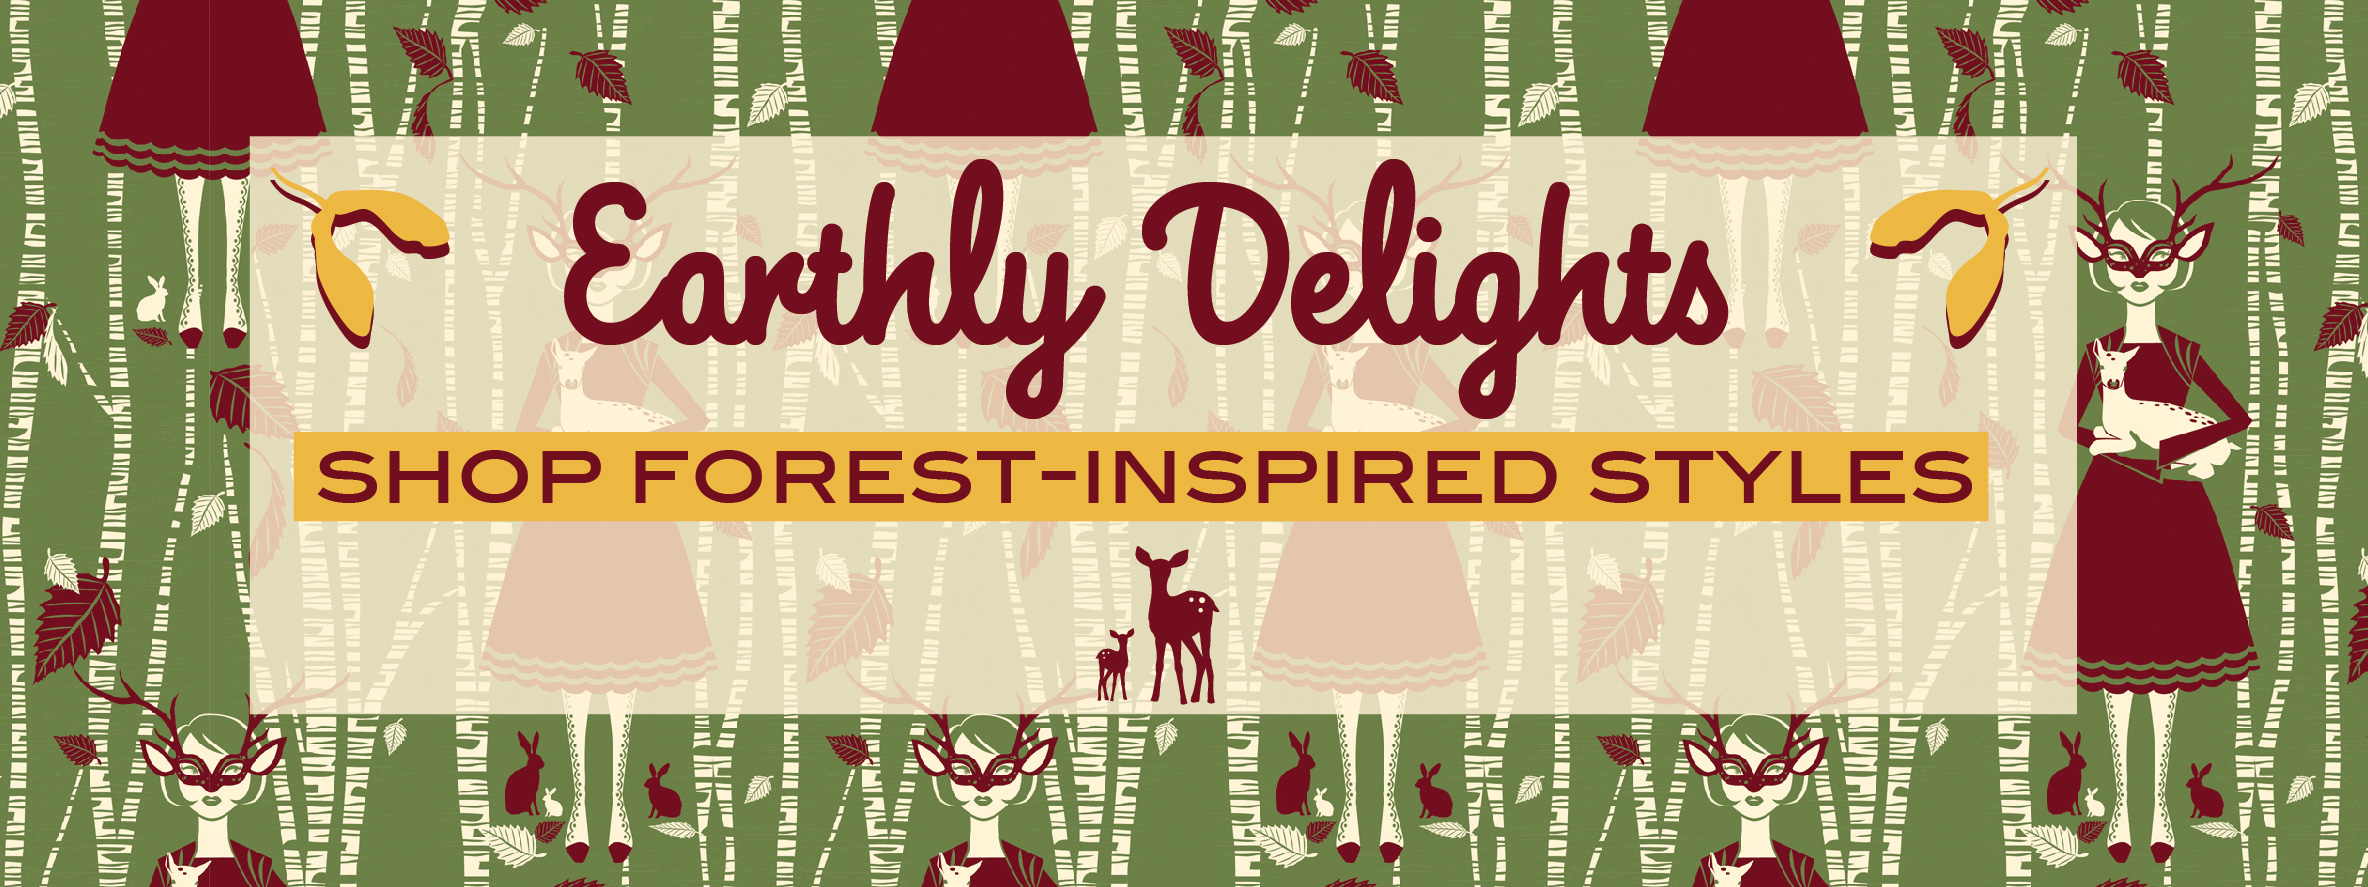 earthly-delights-banner.jpg